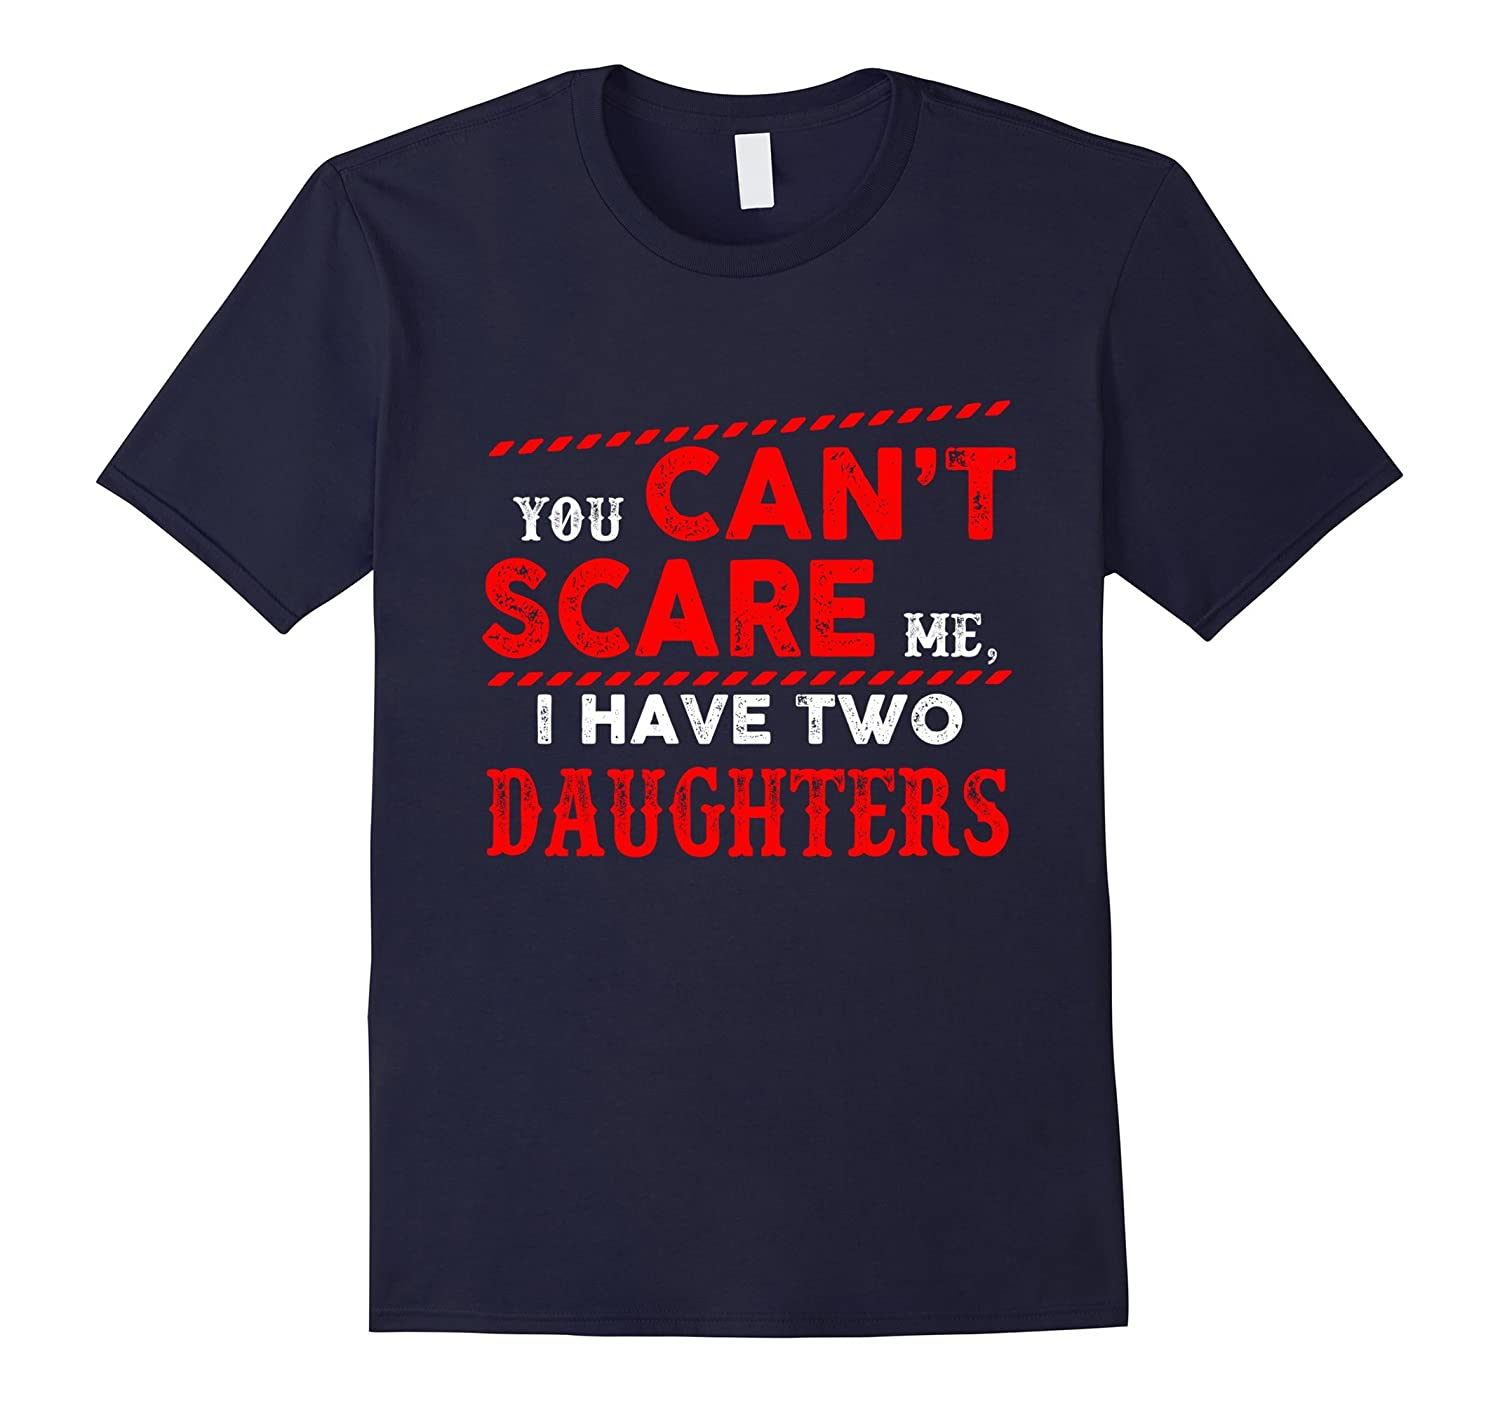 Funny T-Shirt For Dad Who Have Two Daughters-Vaci